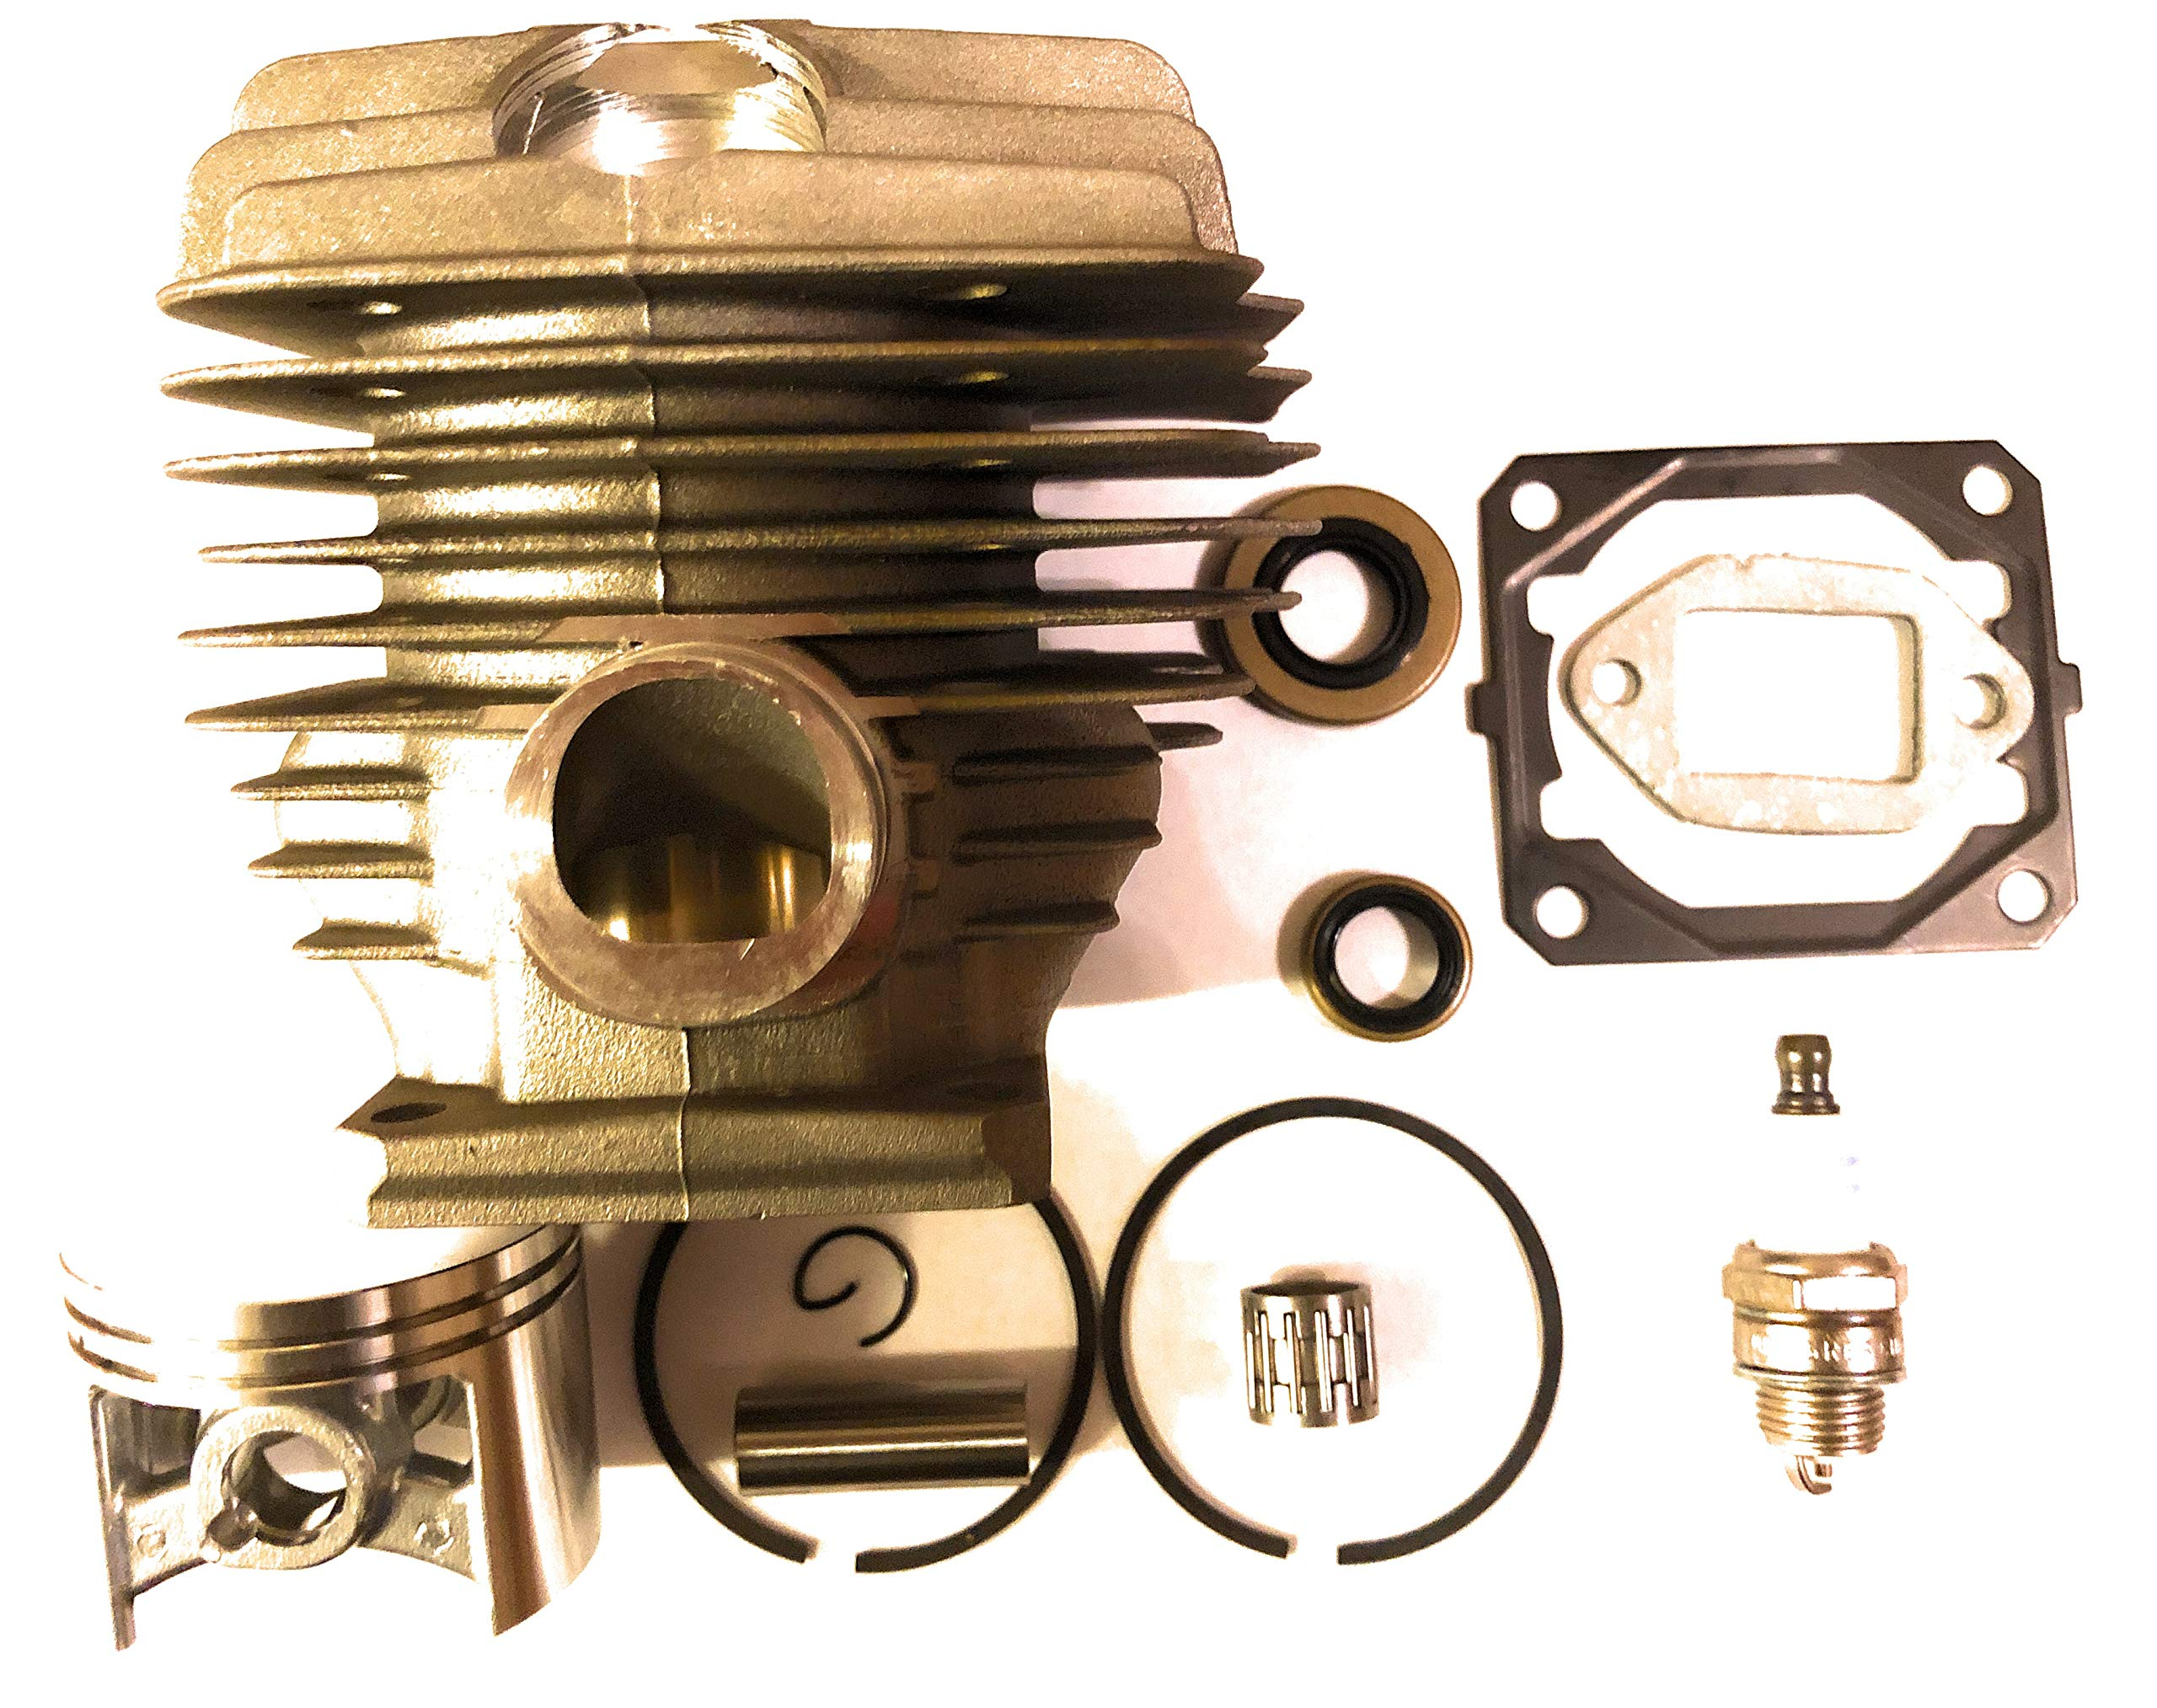 Stihl 046, 046 Magnum, MS460,Piston & Cylinder Kit 52mm with Gaskets,Bearing,Seals, And Spark Plug Replaces Stihl # 1128-020-1217 2 DAY STANDARD SHIPPING TO US Installation Instructions Included